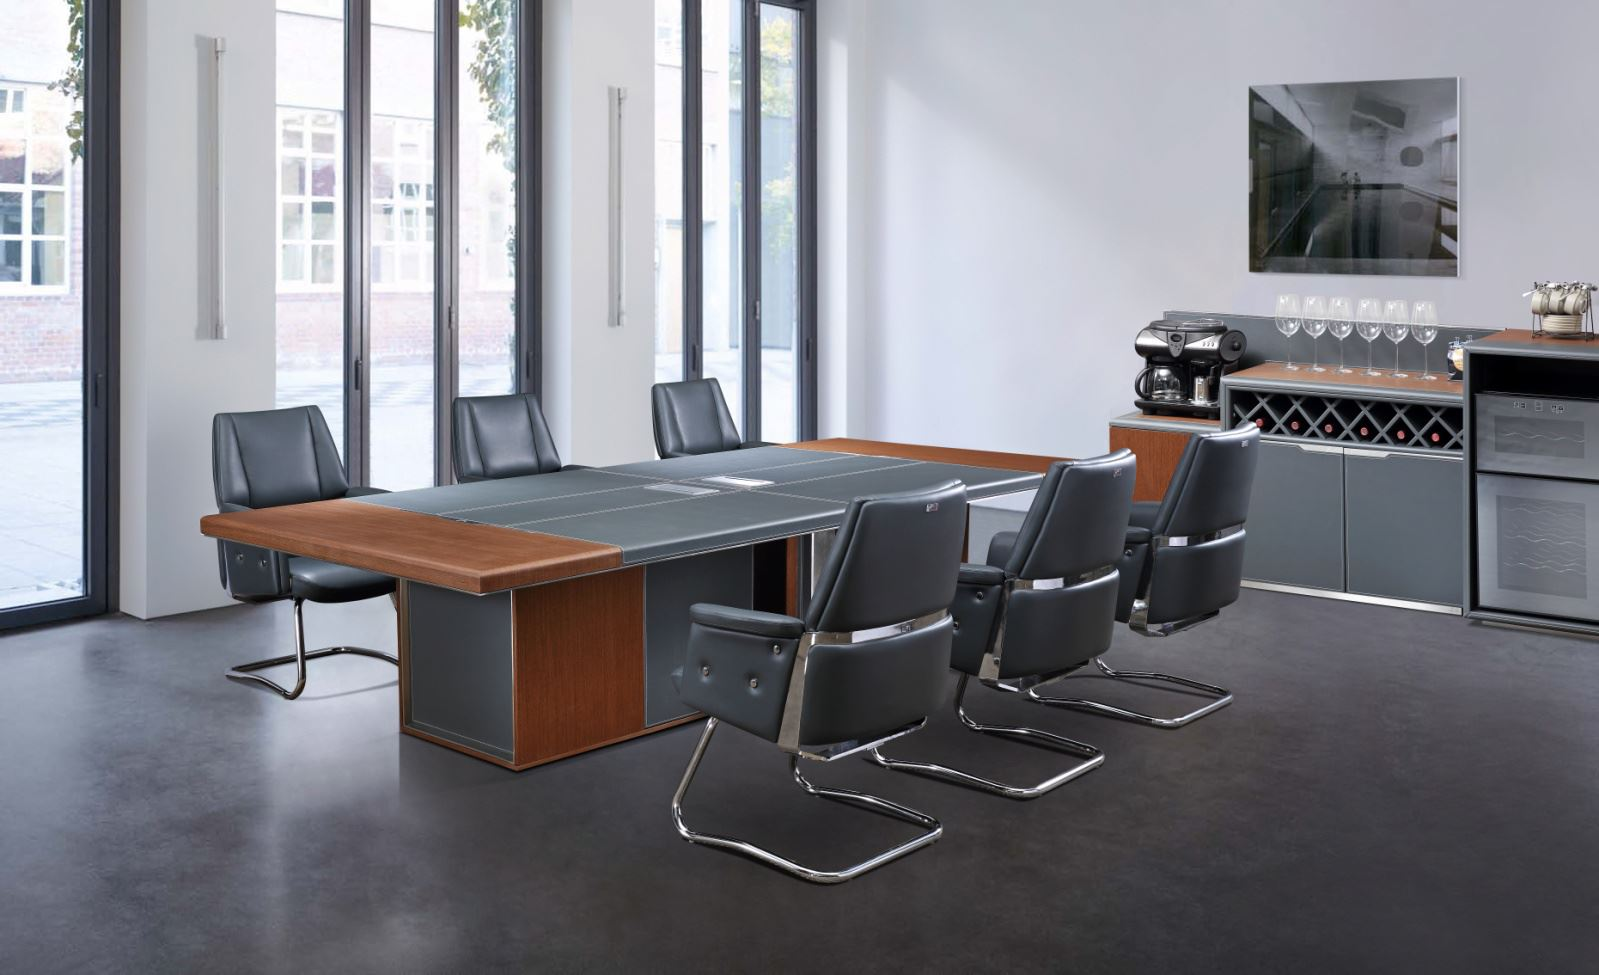 Customize conference table